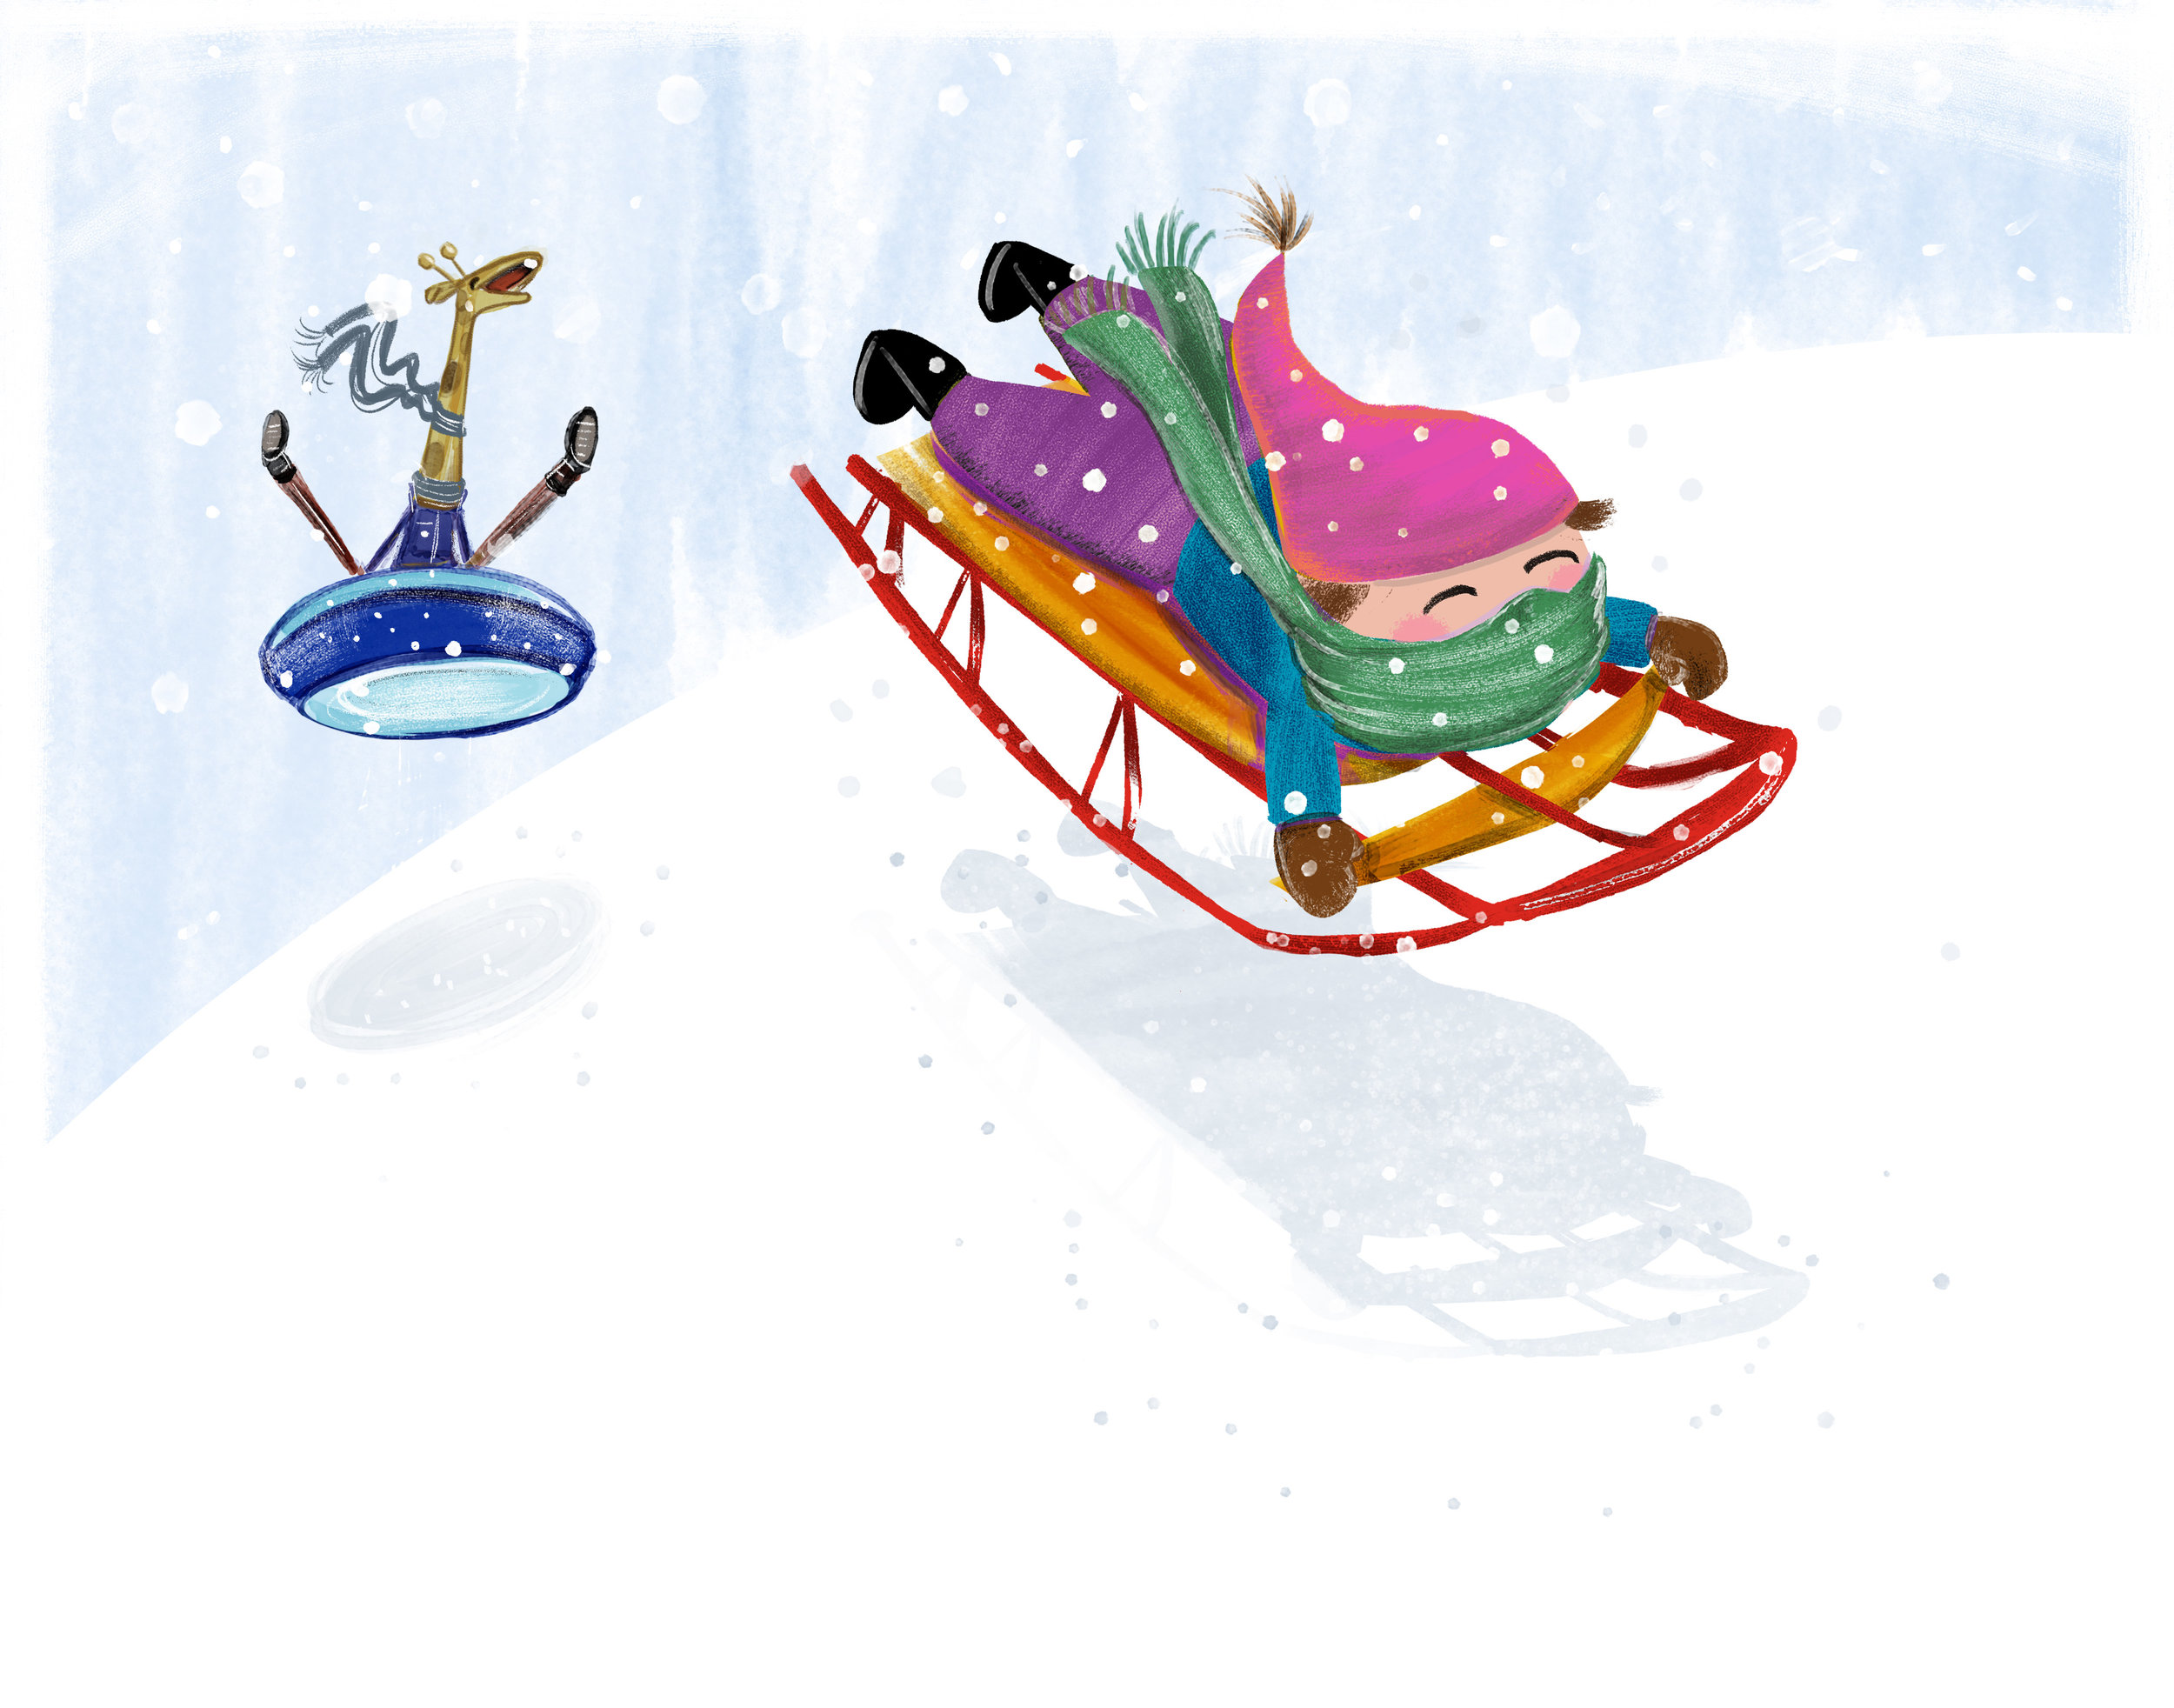 littlest sledder girl.jpg